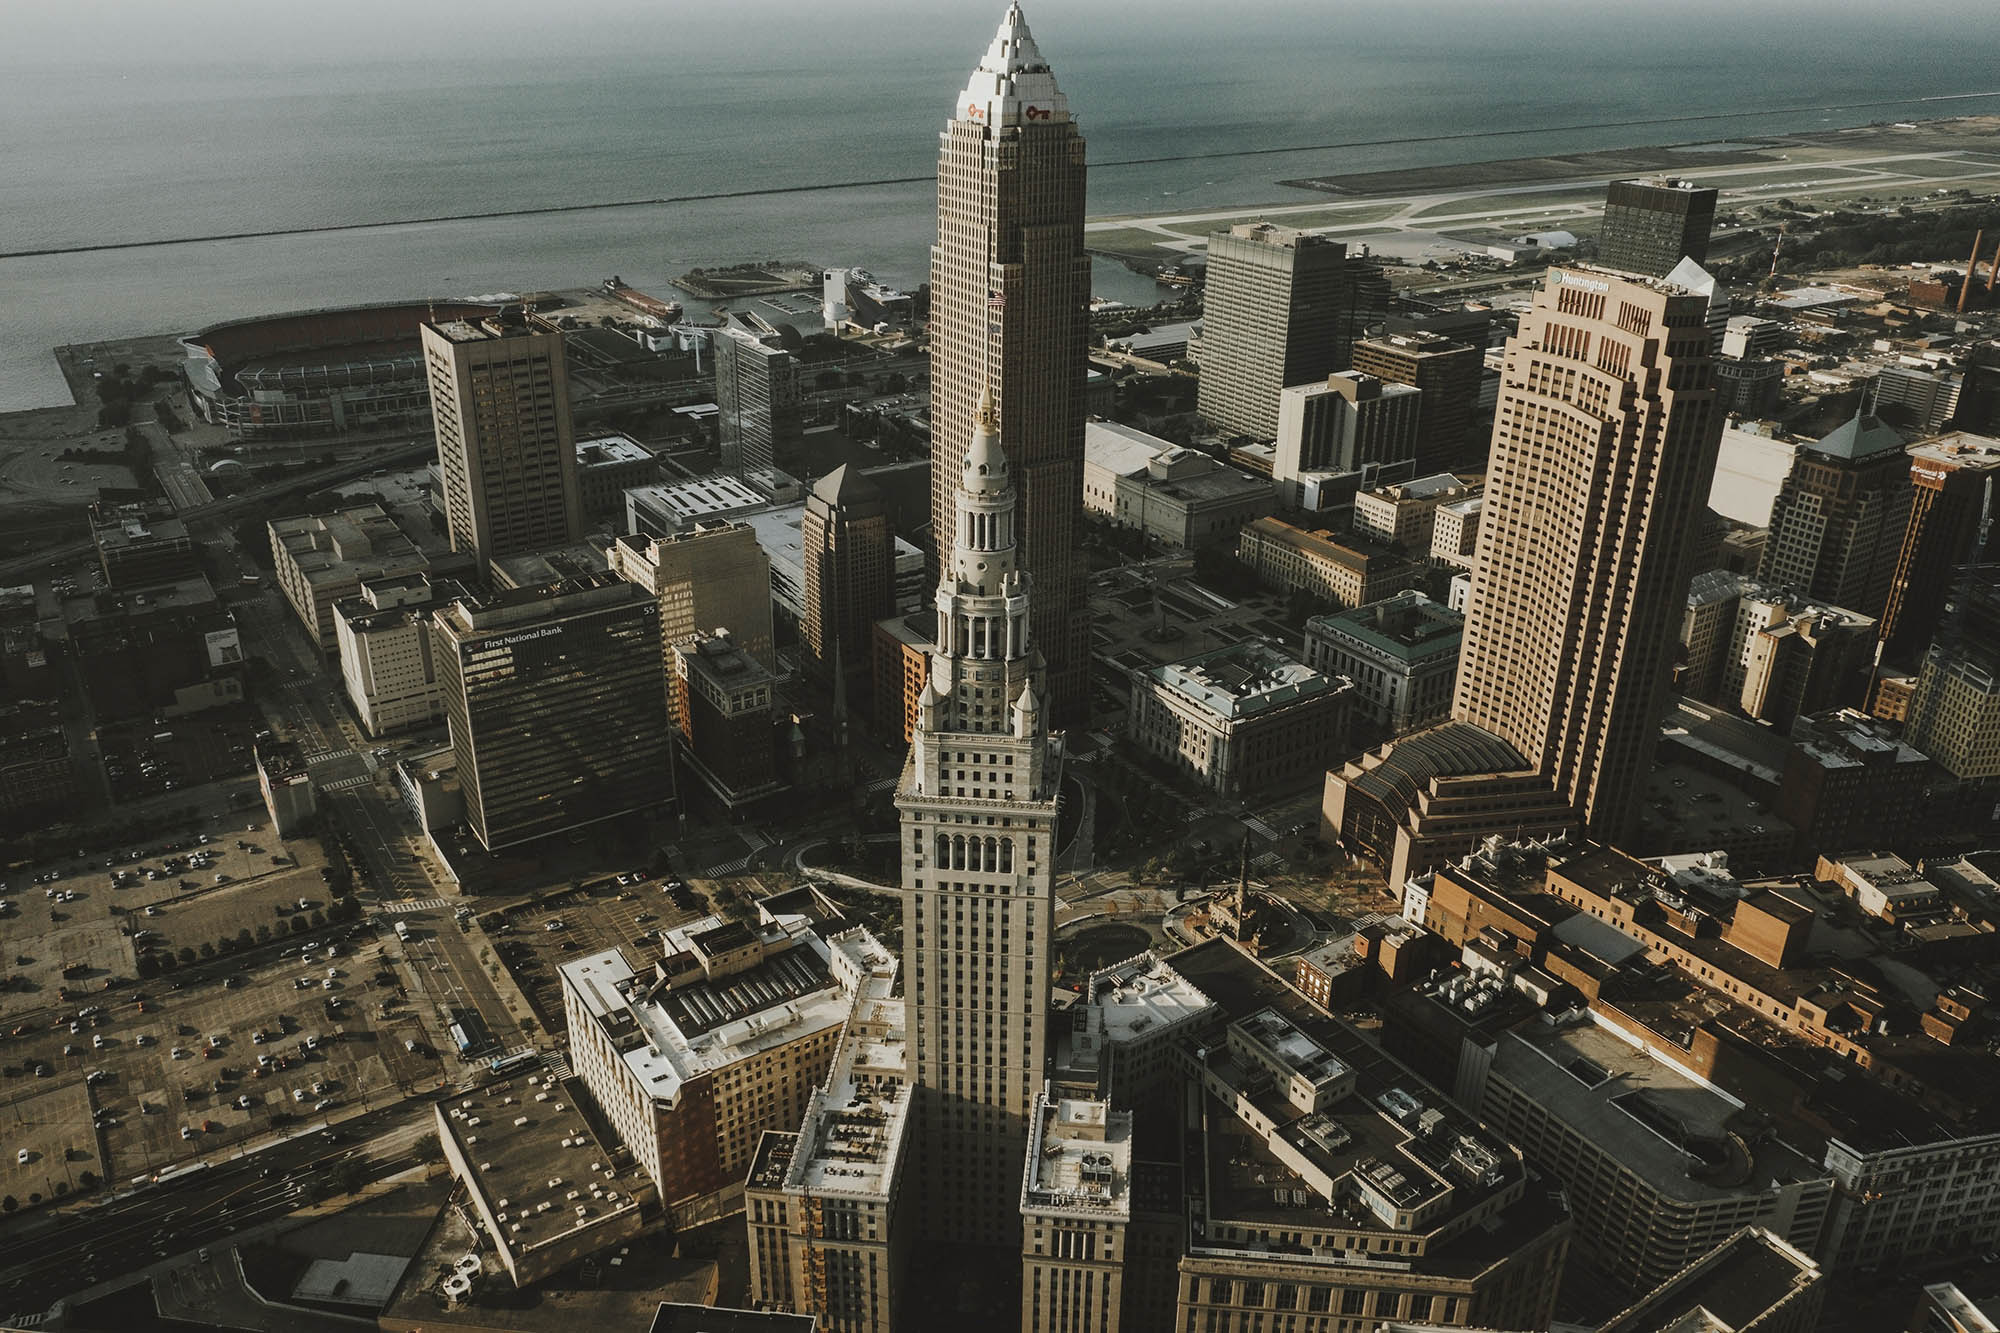 Cleveland City Skyline from Above